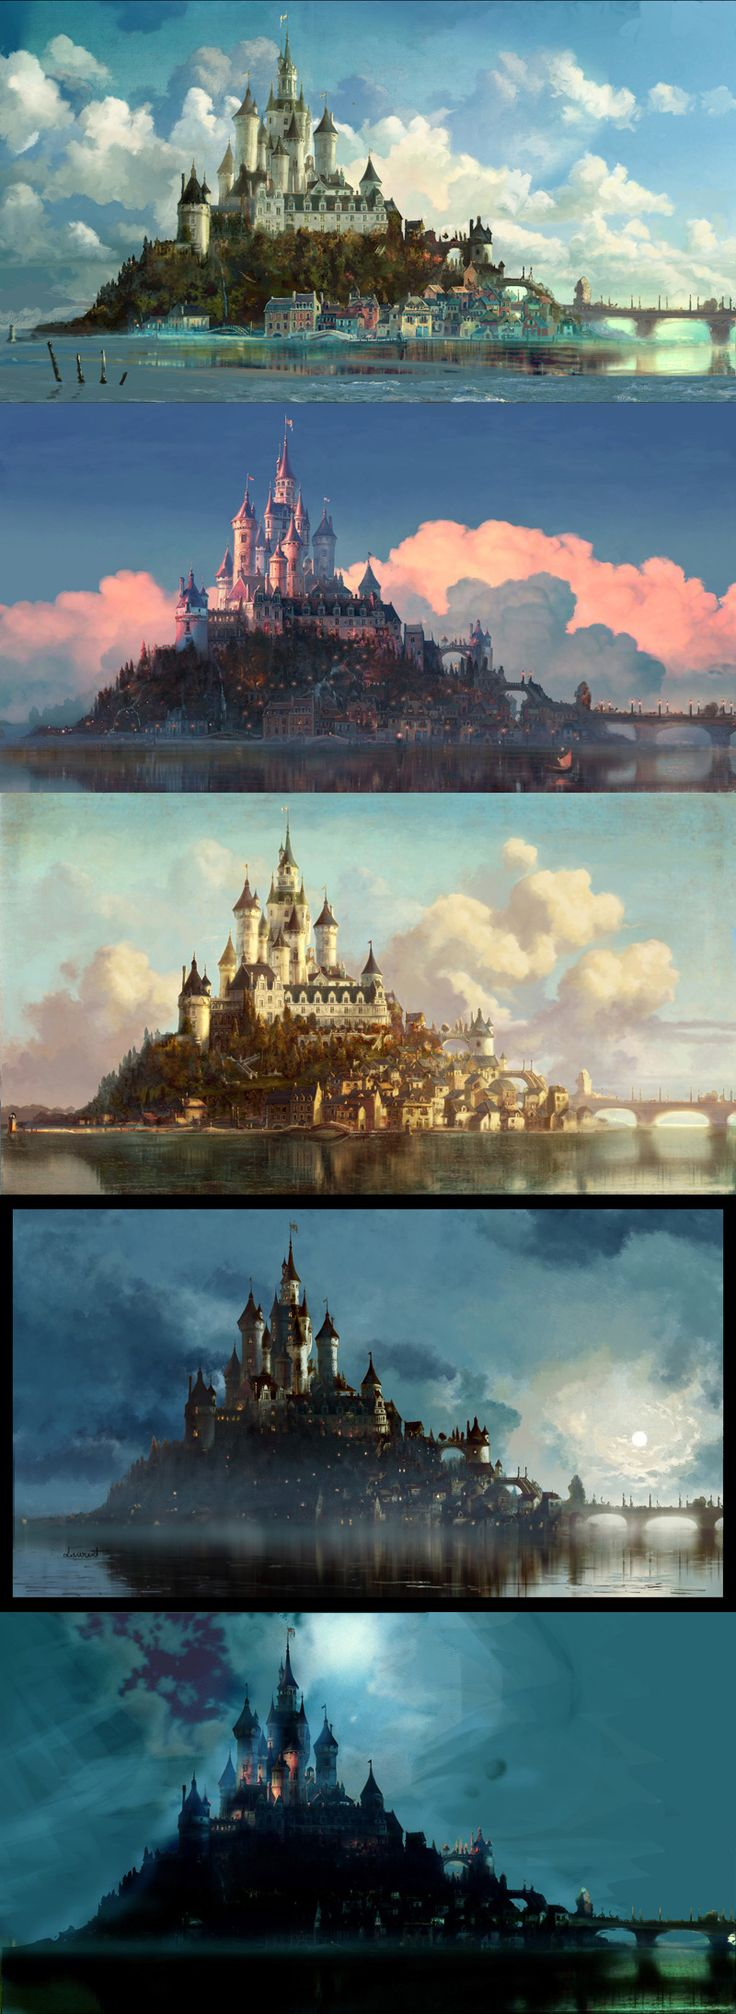 Tangled Concept Design by Laurent Ben-Mimoun